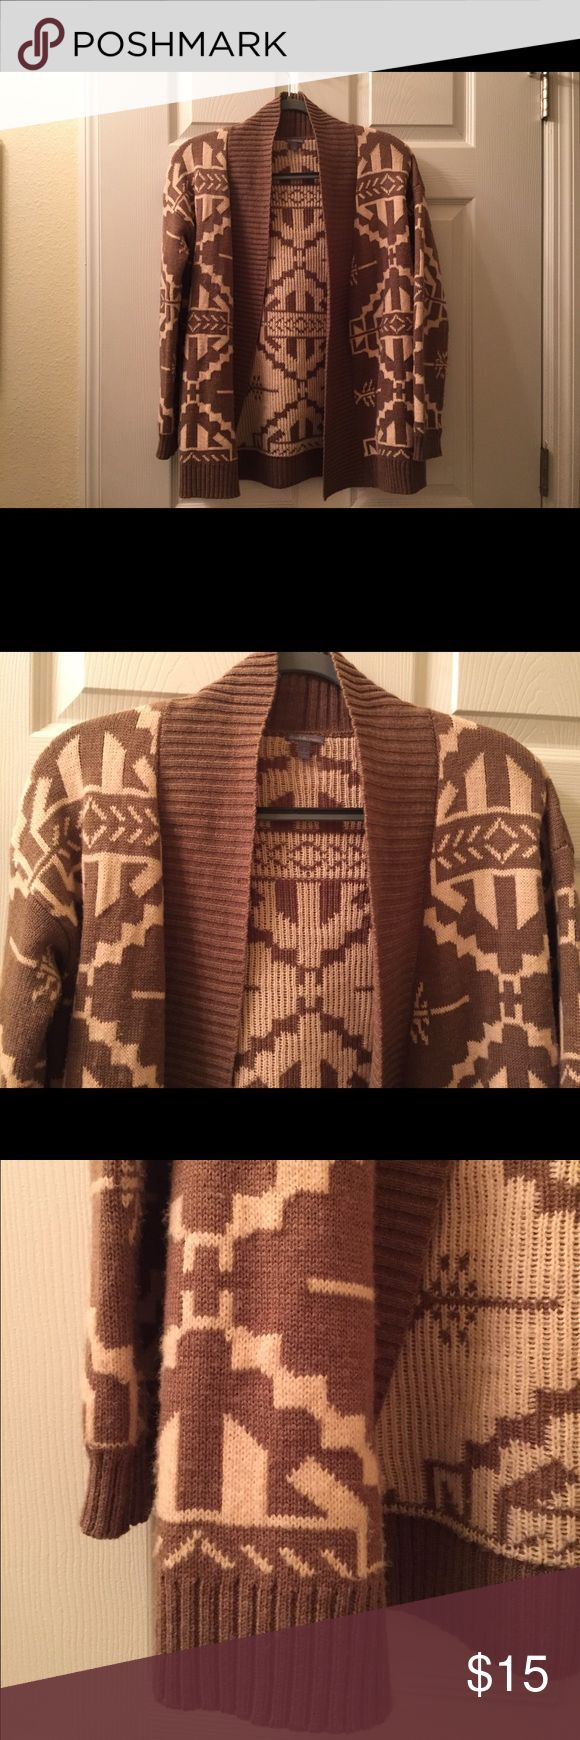 Aztec print cardigan Pink and tan Aztec print cardigan in great condition Charlotte Russe Sweaters Cardigans